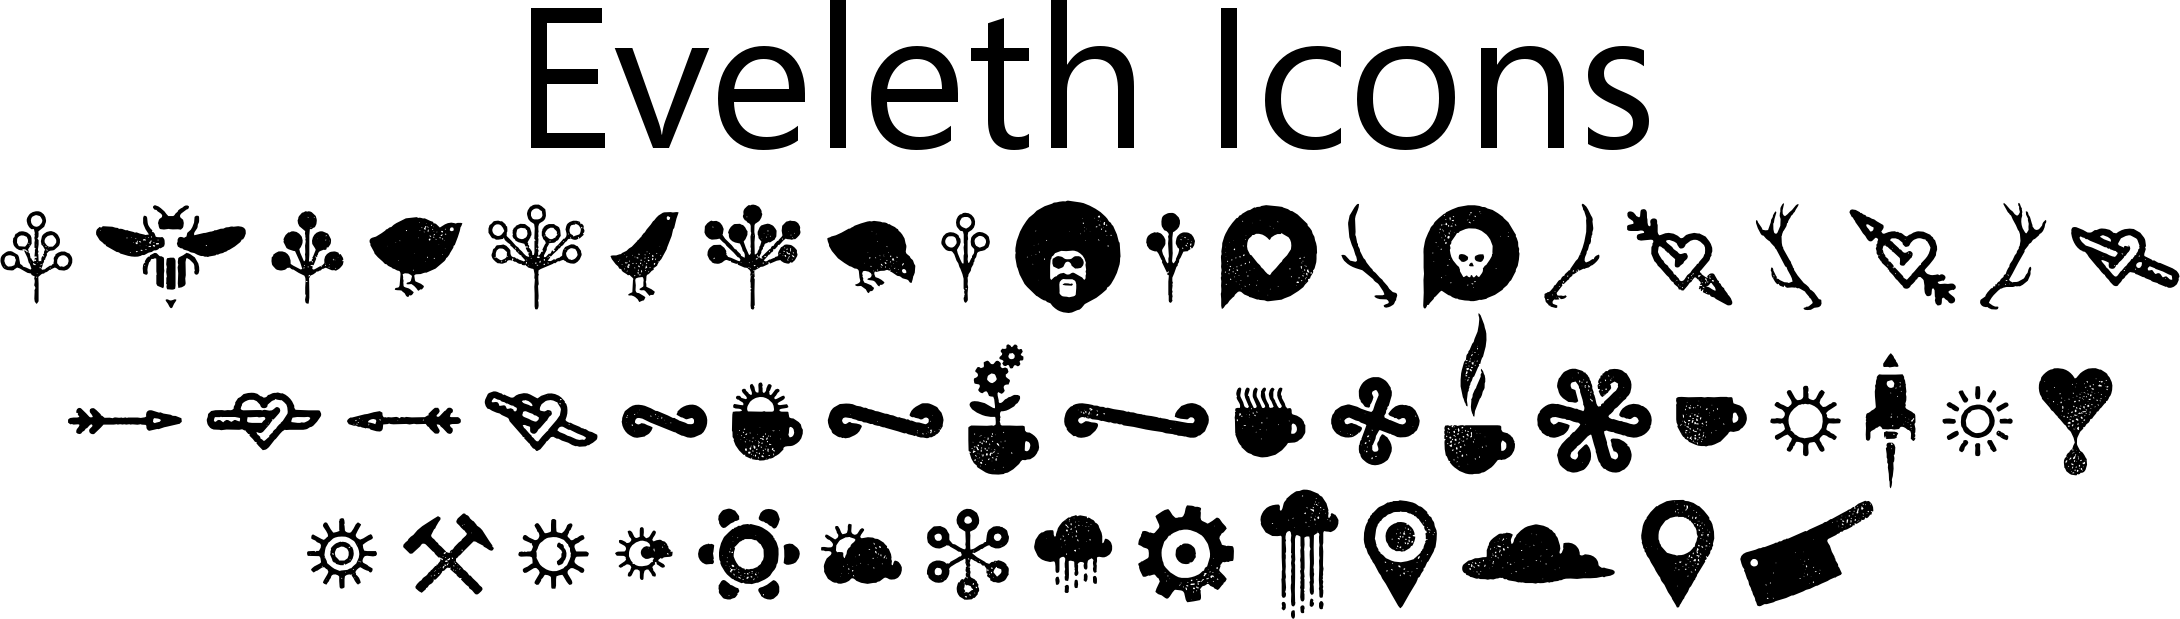 Eveleth Icons